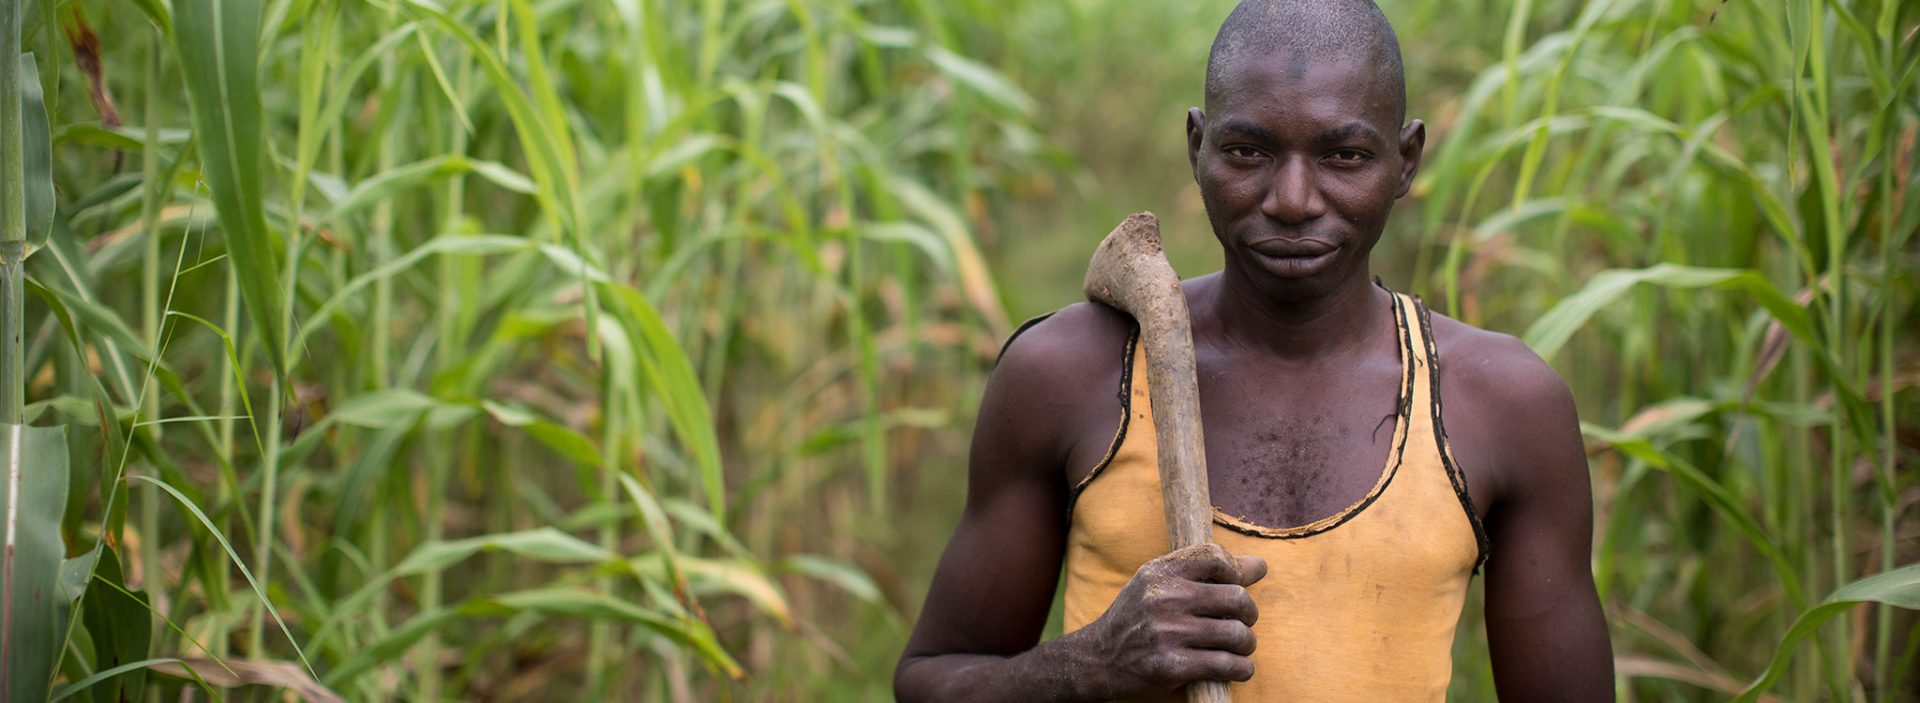 A man works in his field at an Action Against Hunger project in Mali.